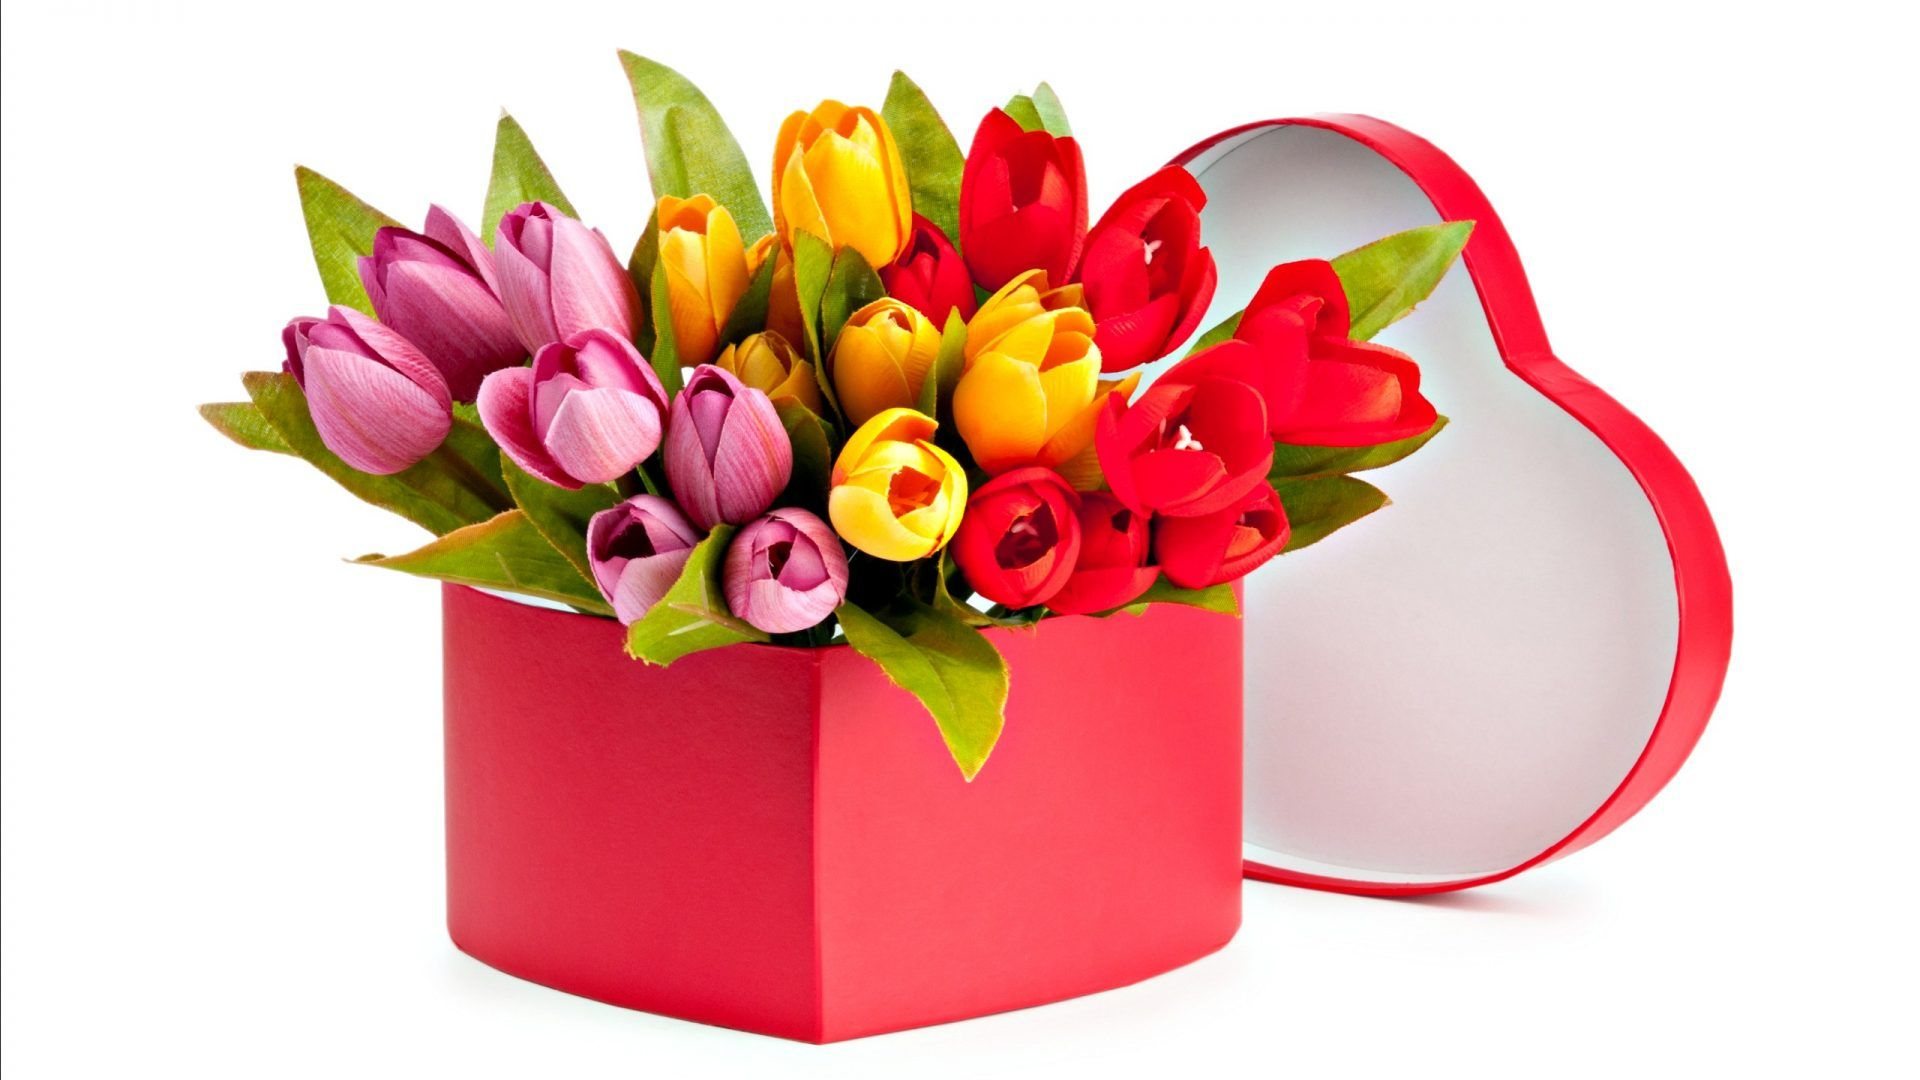 Basket With Flowers hd image download